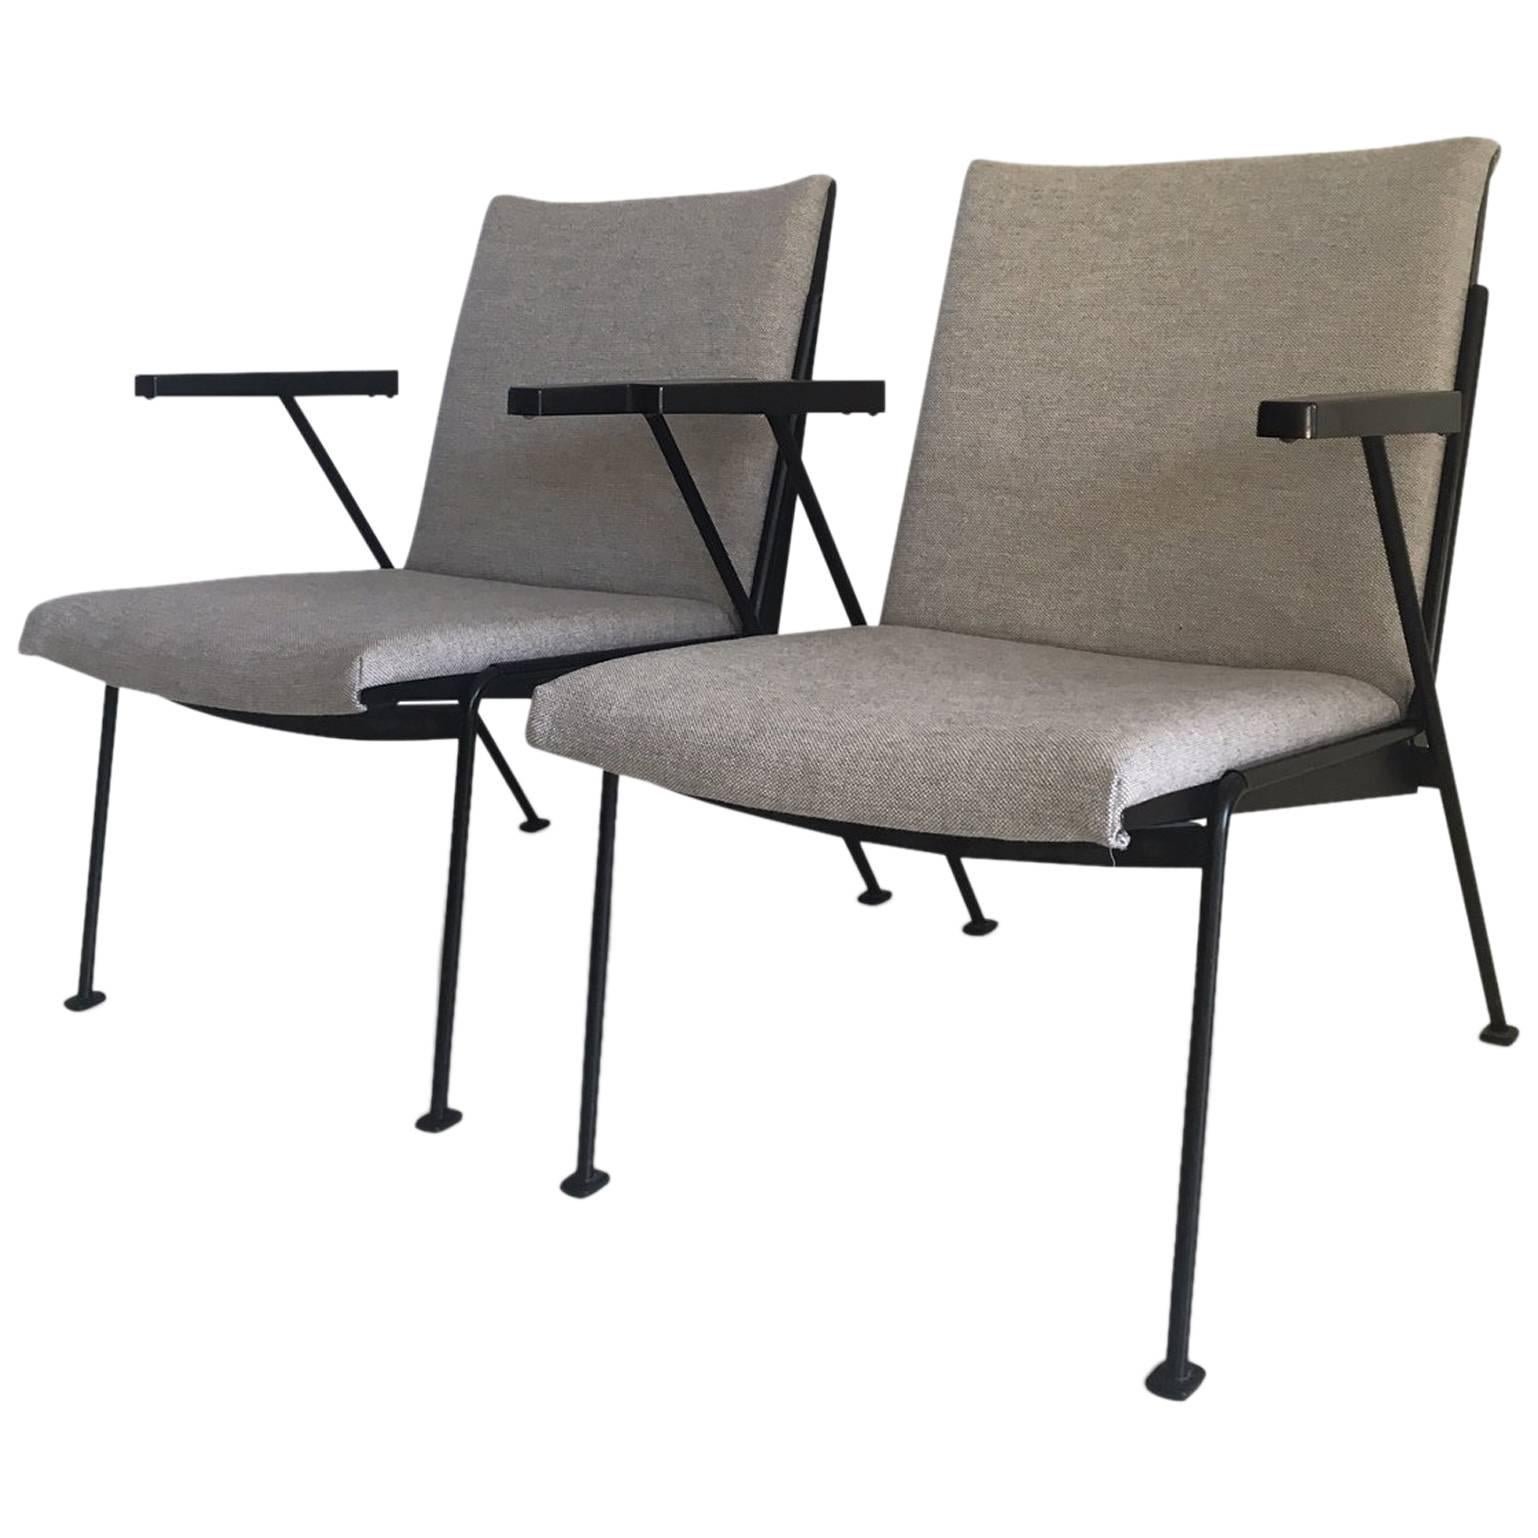 Black Oase Lounge Chairs By Wim Rietveld For Ahrend De Cirkel, 1950s